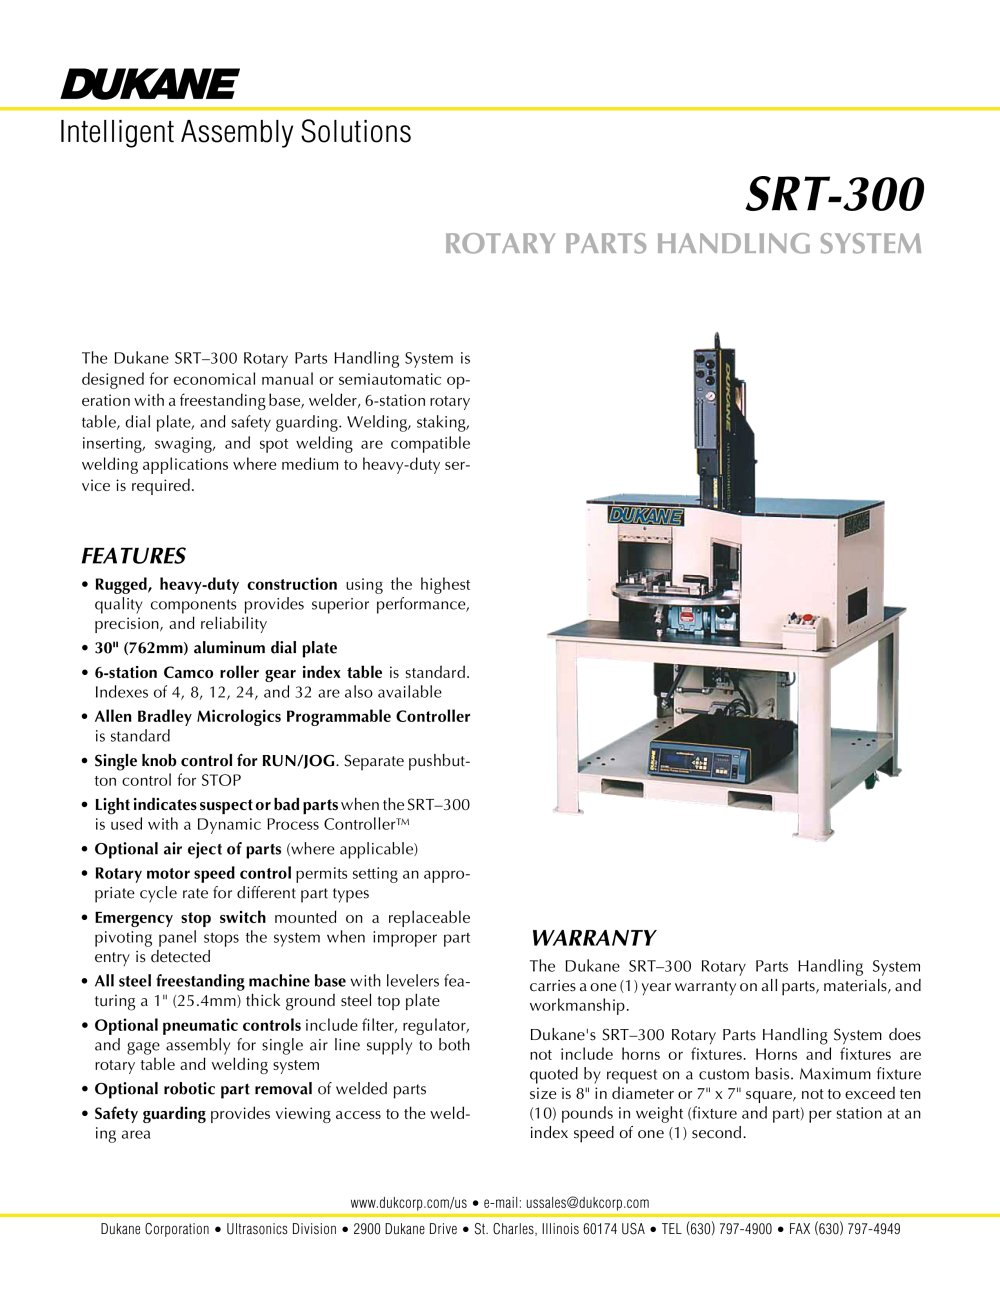 SRT-300 ROTARY PARTS HANDLING SYSTEM - 1 / 2 Pages